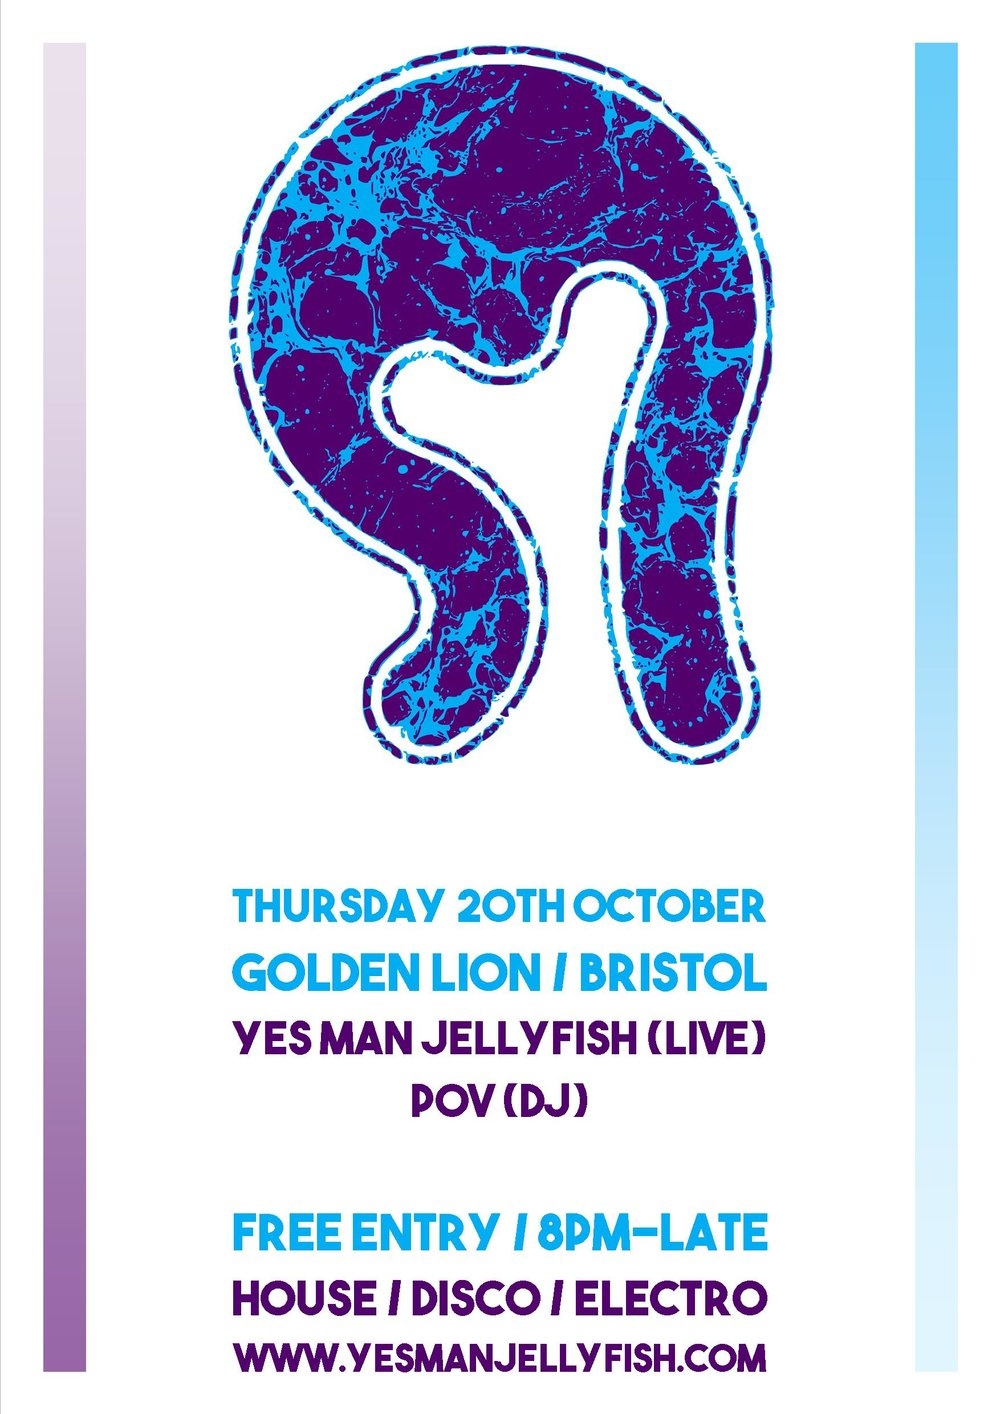 Yes Man Jellyfish Live + POV DJ at The Golden Lion, Bristol